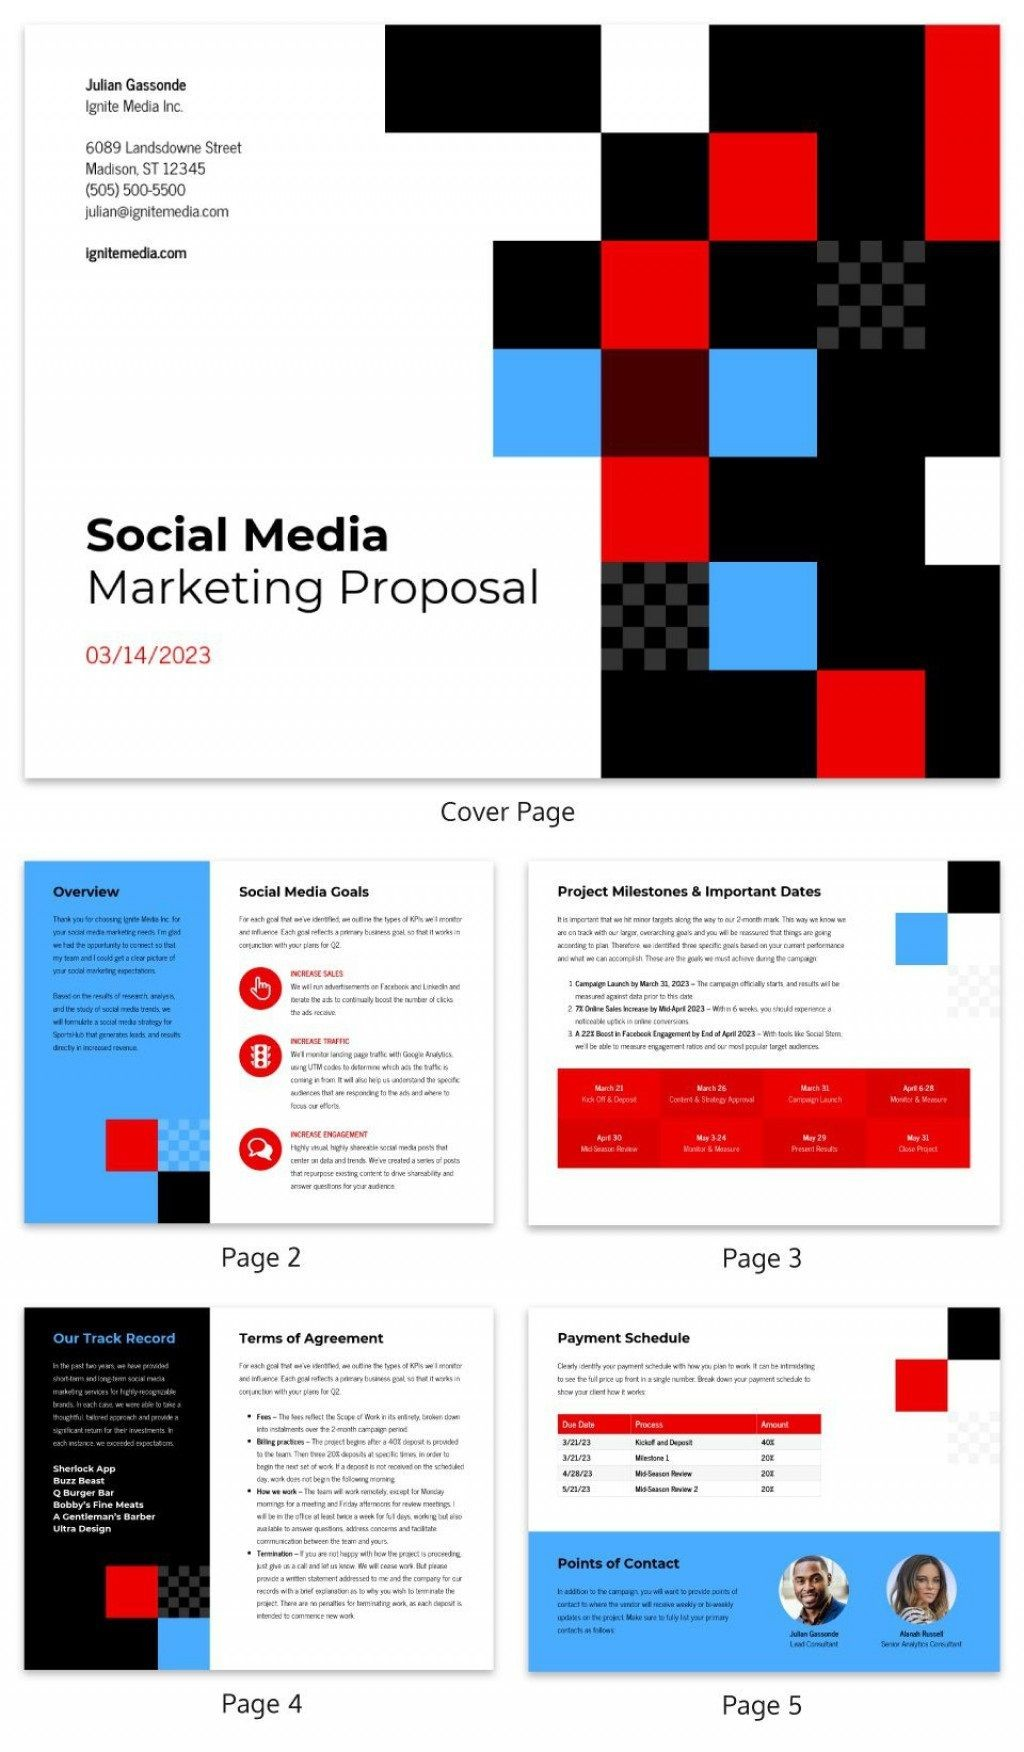 004 Fascinating Social Media Proposal Template Ppt High Def Large